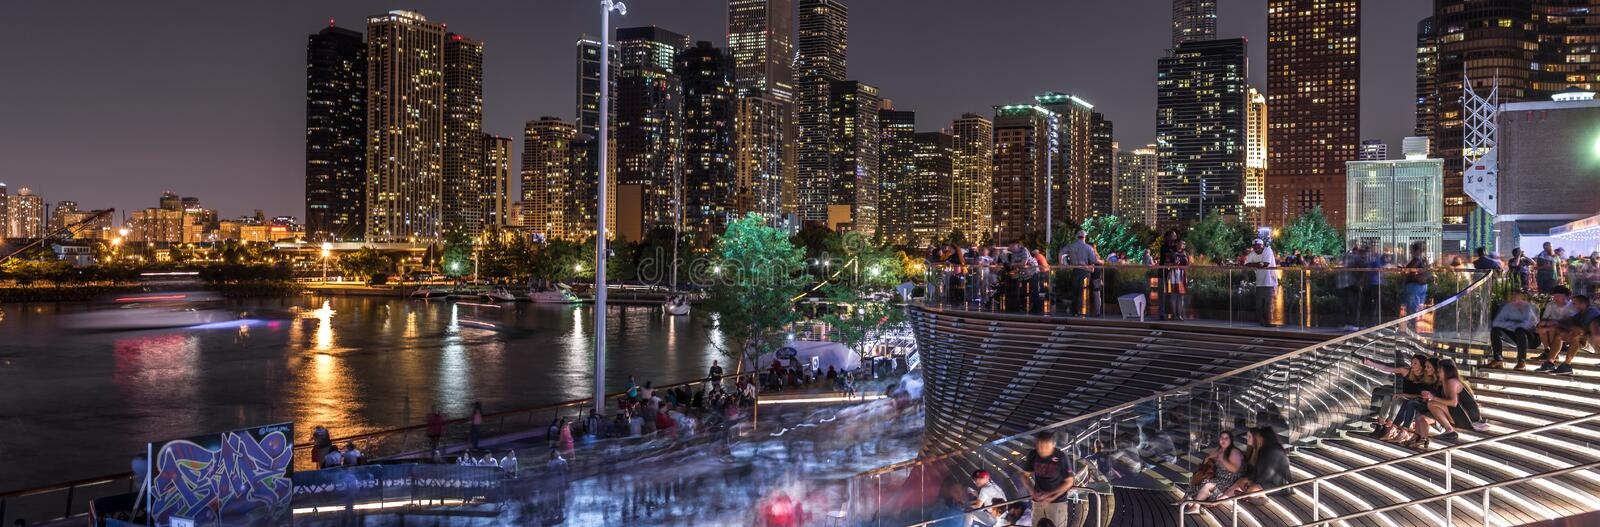 Crowds at Chicago`s navy pier. Chicago, US - July 17, 2016: Long exposure of crowds of people gathered at the Navy pier to watch a fireworks display royalty free stock image